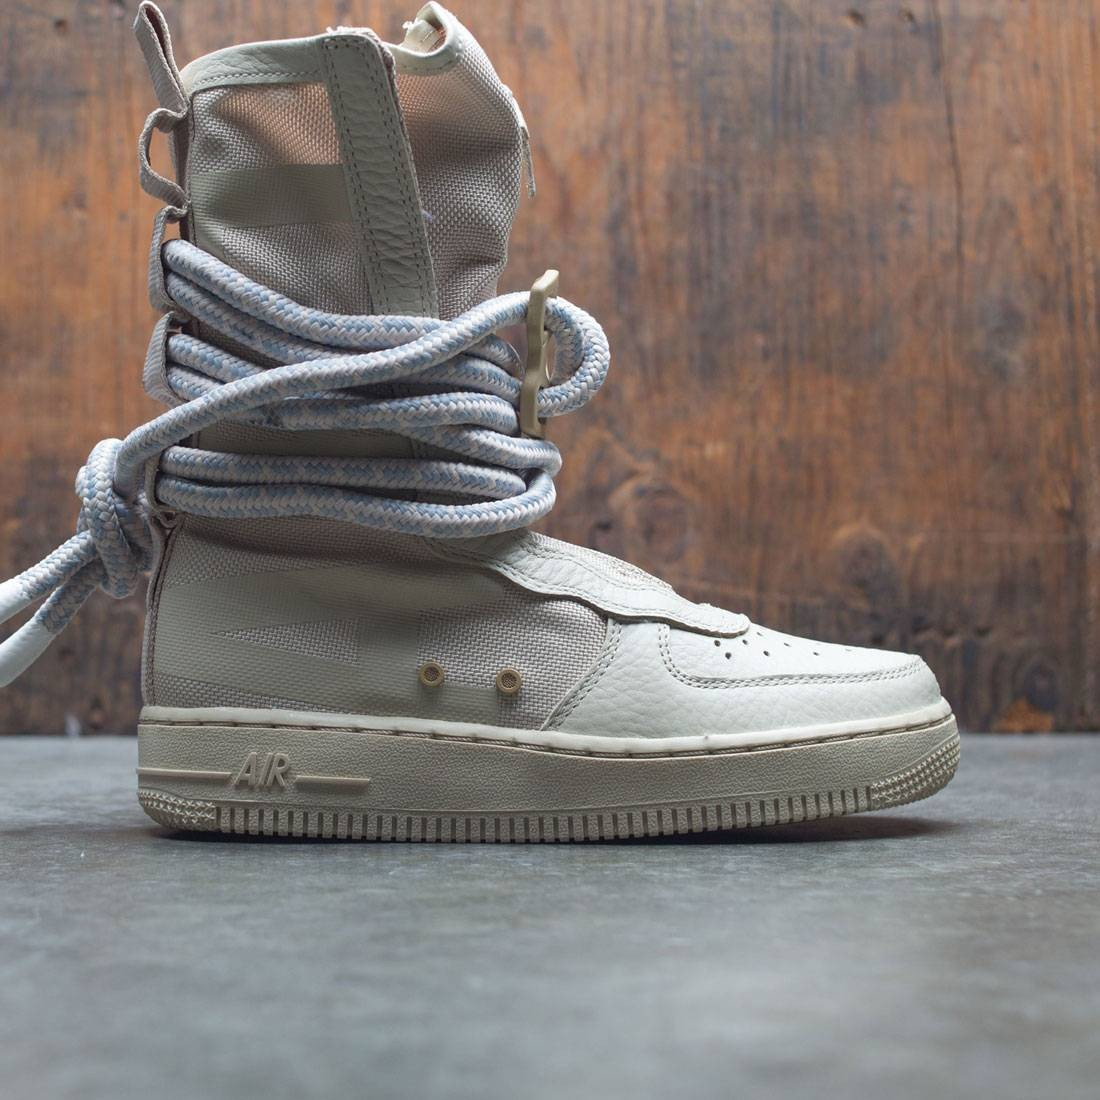 Nike SF Air Force 1 | Damen (Frauen) Boots Nike SF Air Force